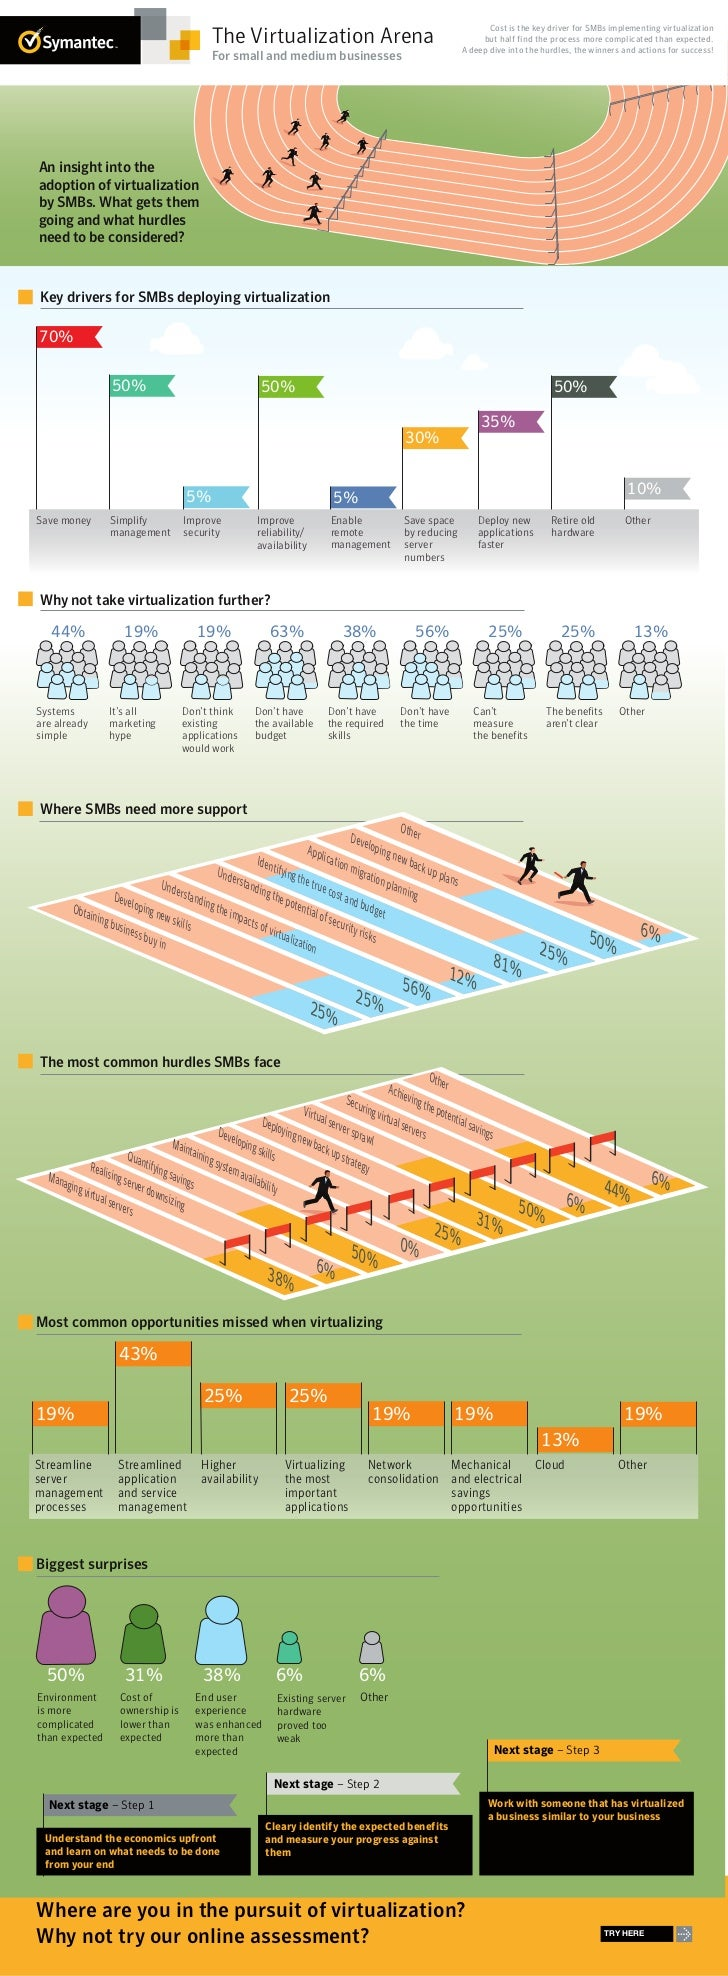 Symantec Infographic: The Virtualization Arena For Small and Medium-sized Businesses